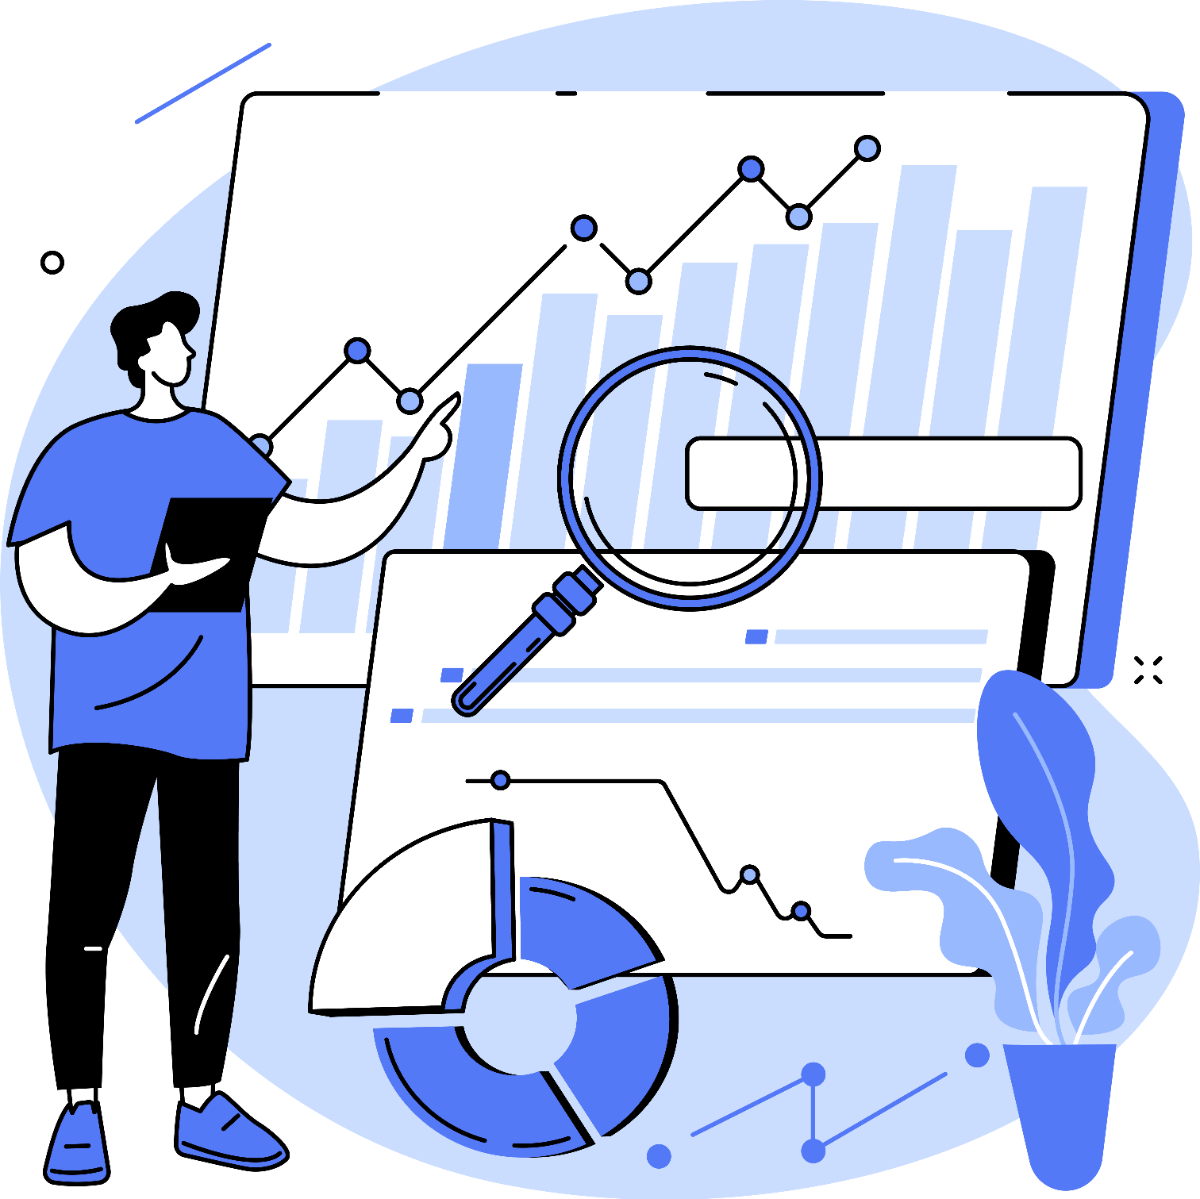 person carrying out financial projects and demographic analysis